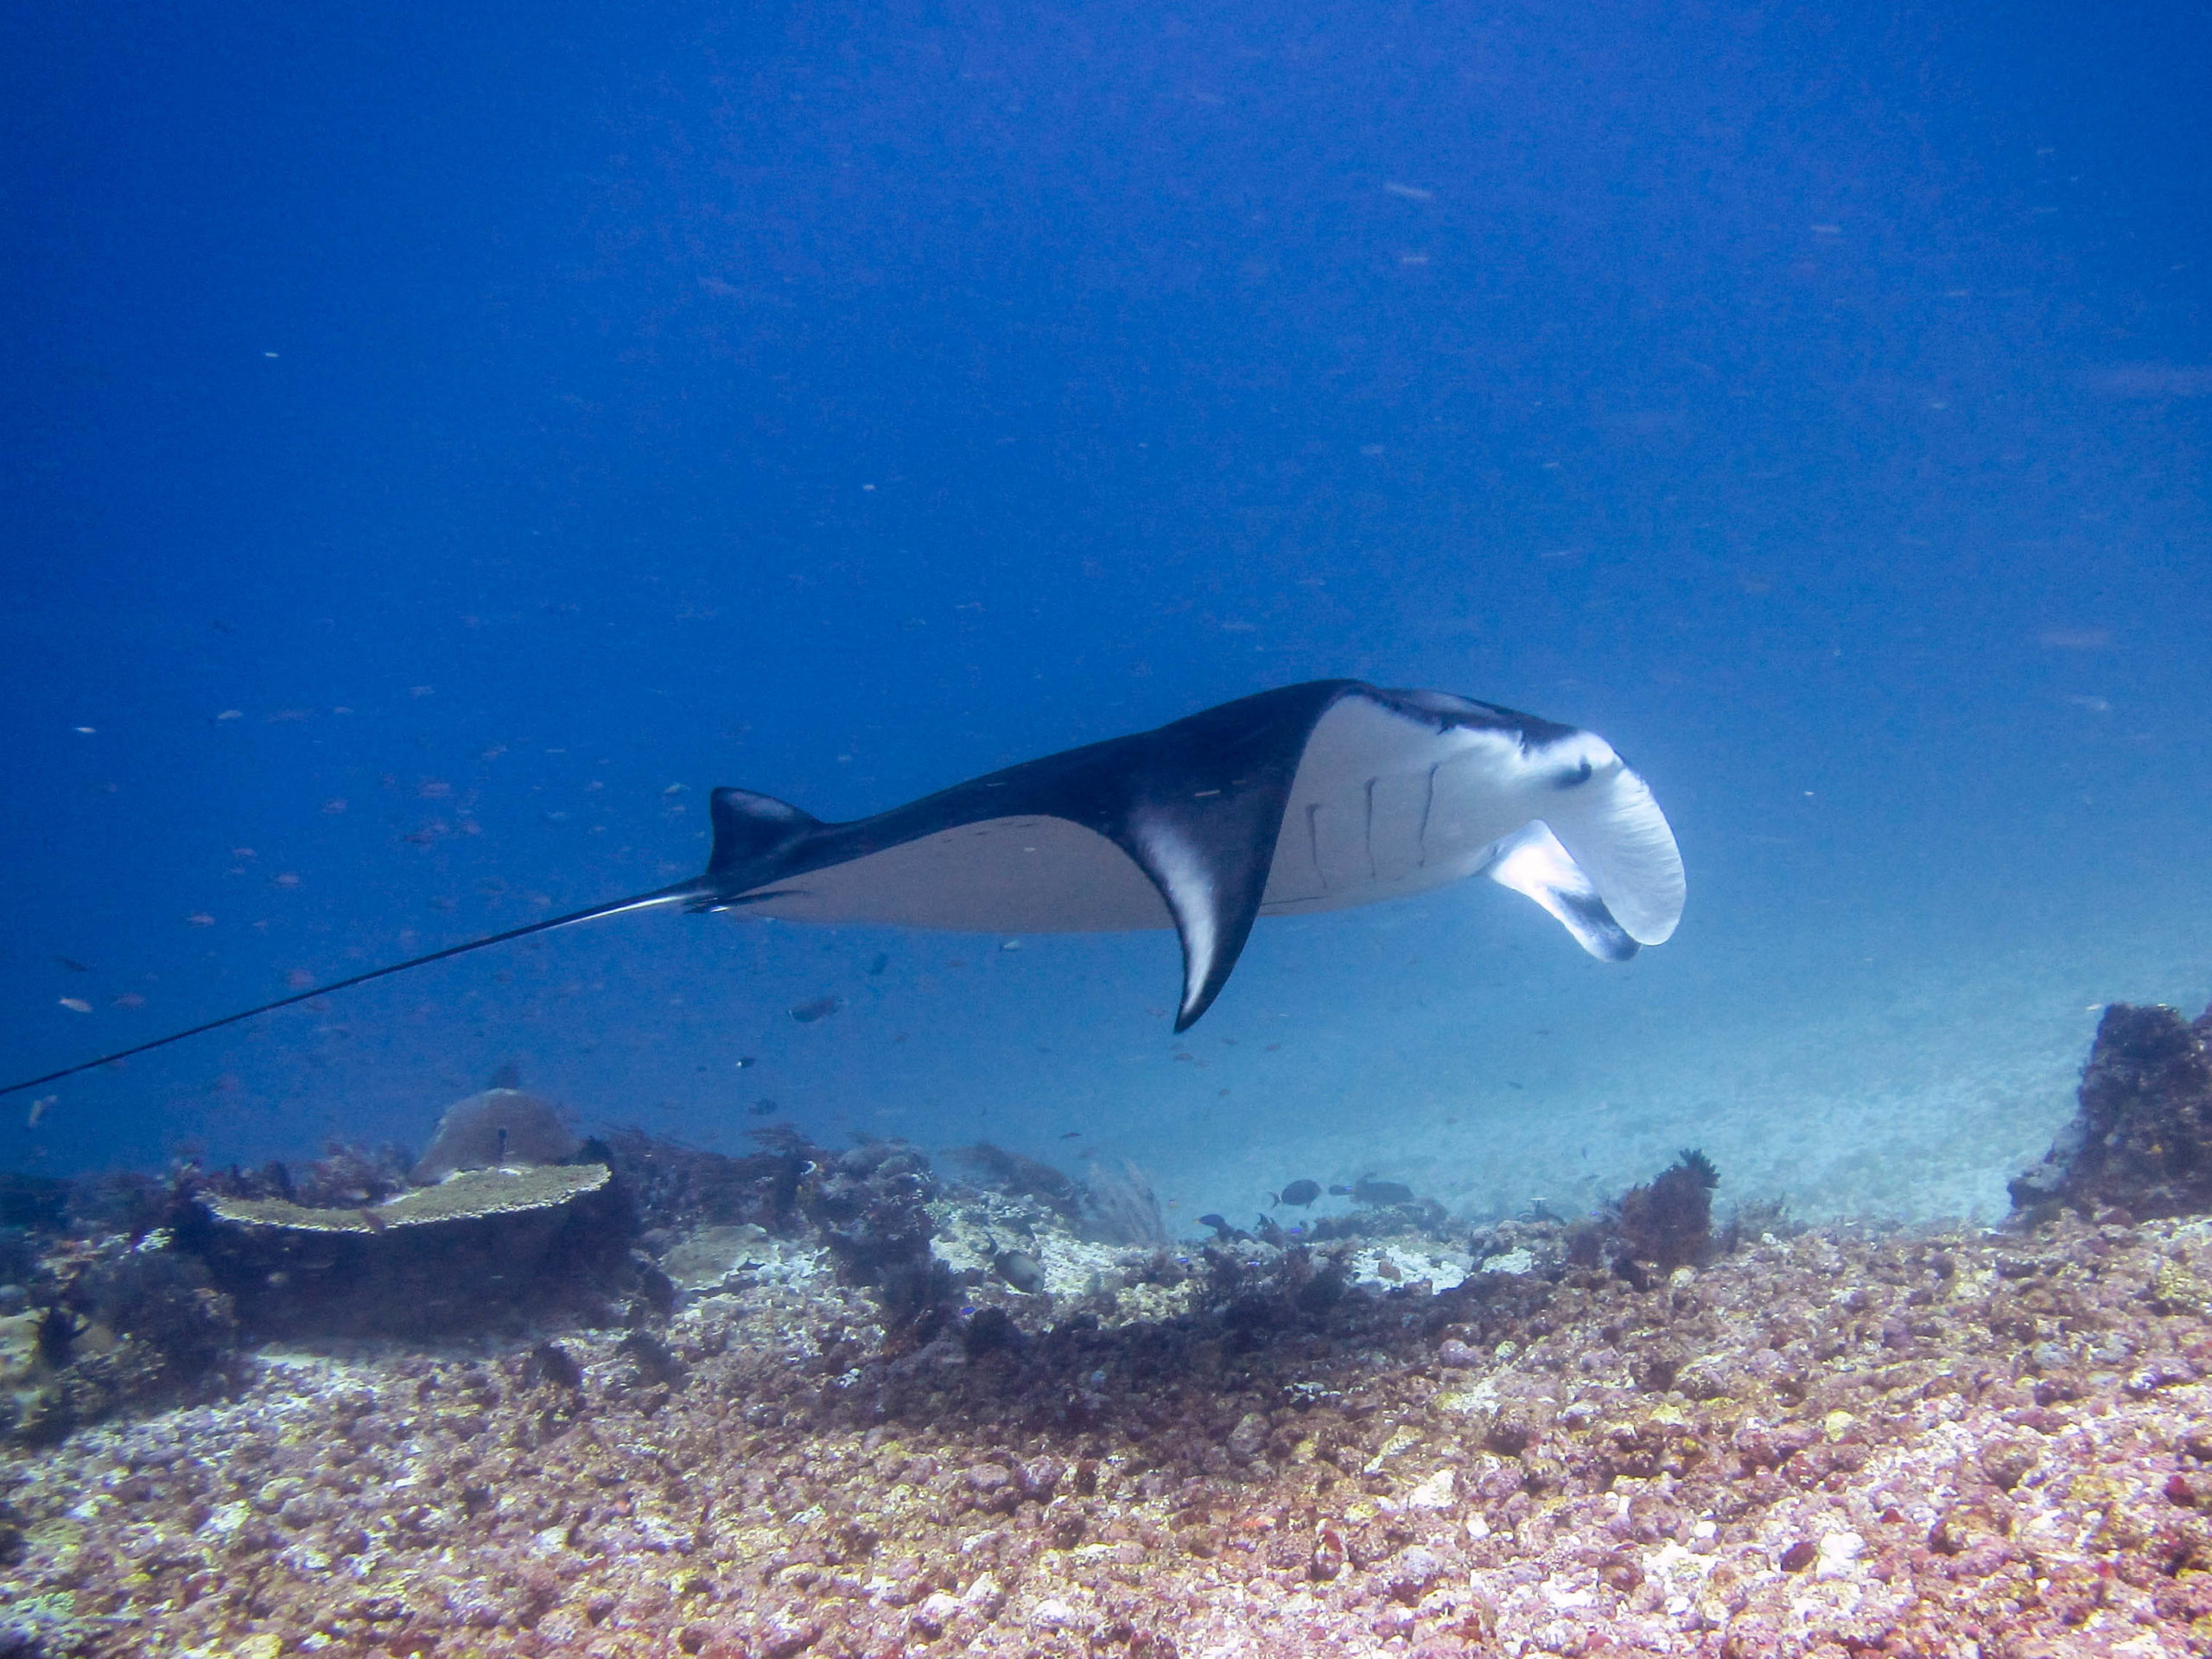 Mantas love a clean as they spend up to 8 hours a day at cleaning stations.